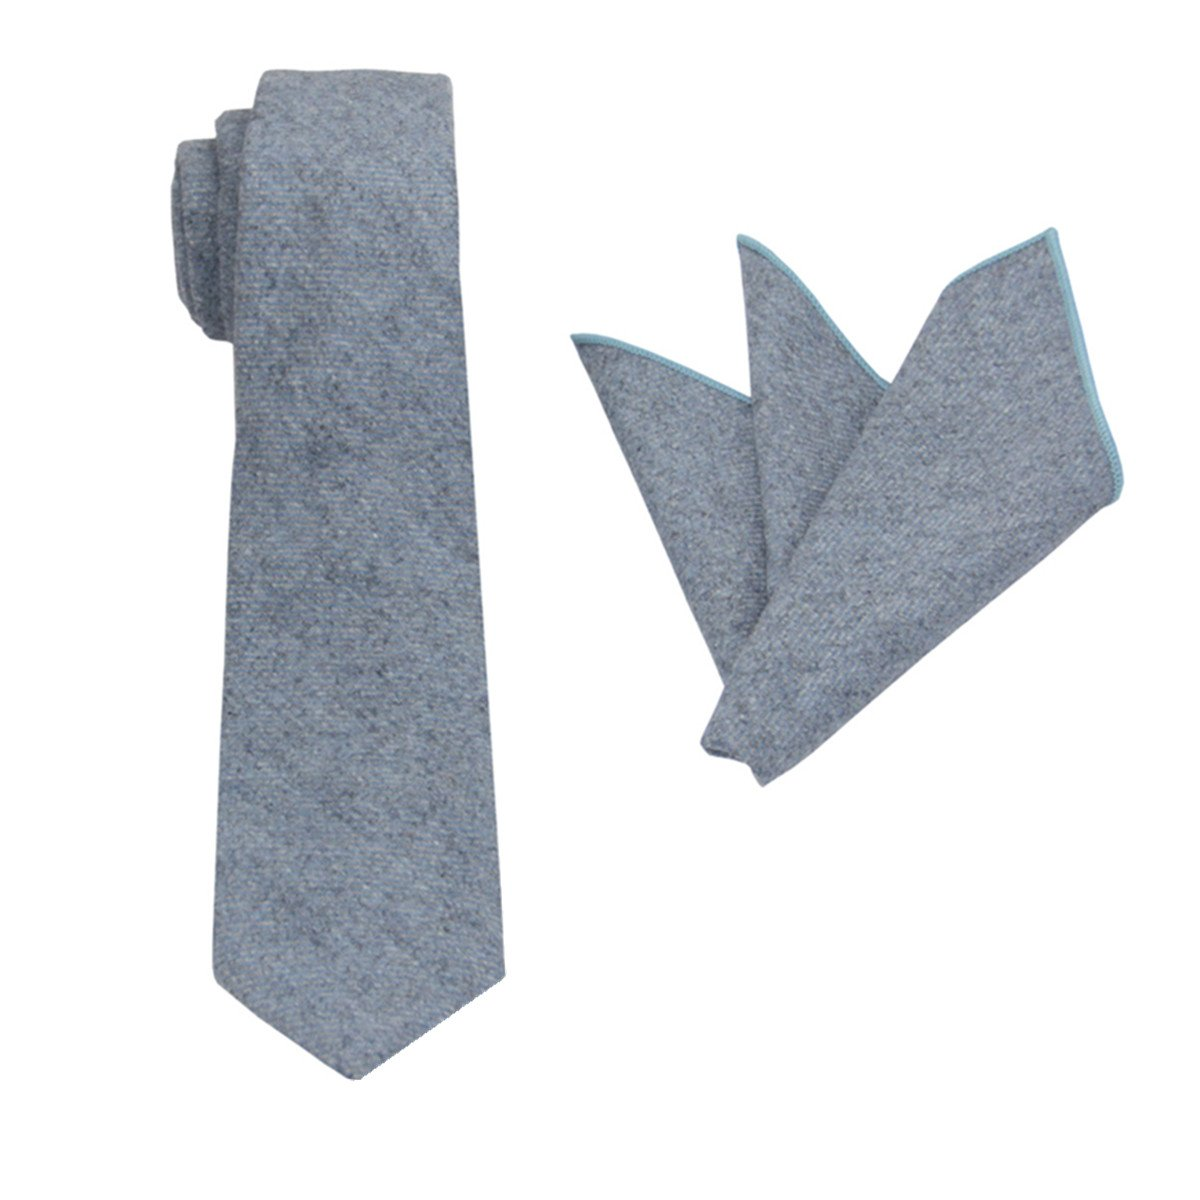 Mens Wool Tie Set :Necktie with Pocket Square (Pale Blue) by Gollate